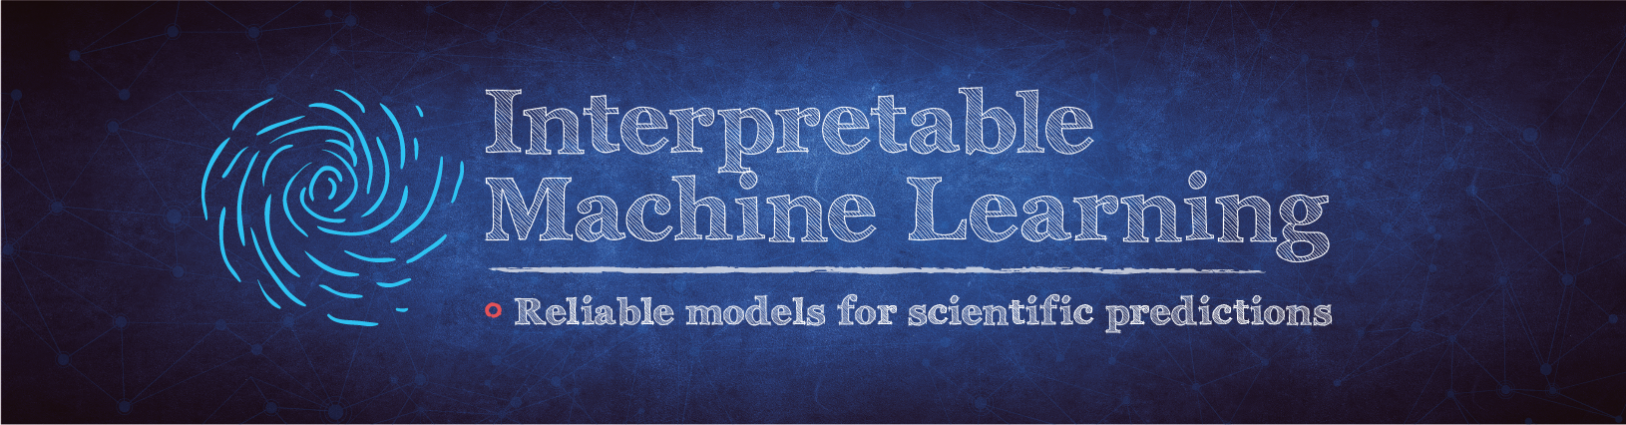 Blue chalkboard with text overlay: Interpretable Machine Learning, Reliable models for scientific predictions